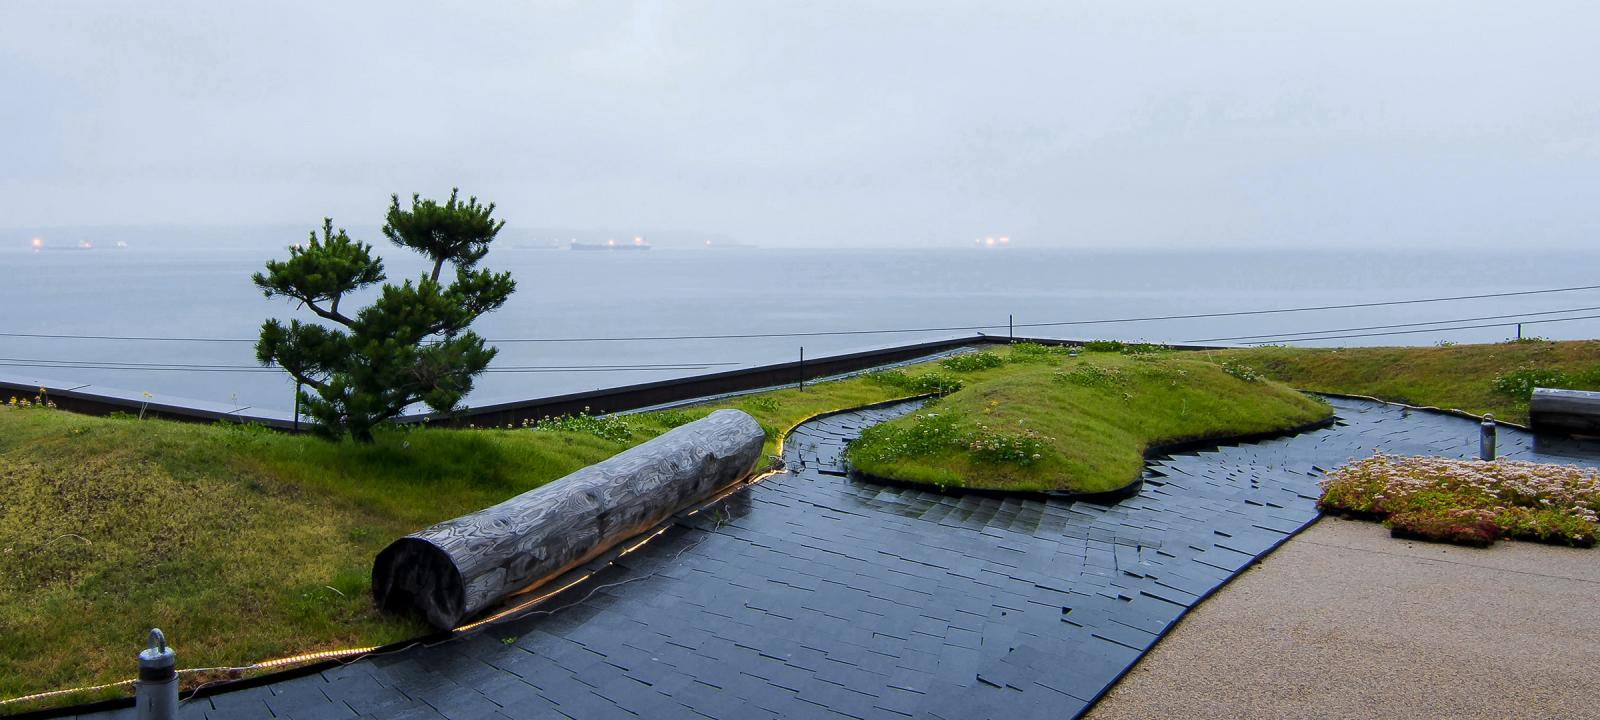 Roof garden with lawn, tree trunk, small pine tree and subtle illumination at dawn